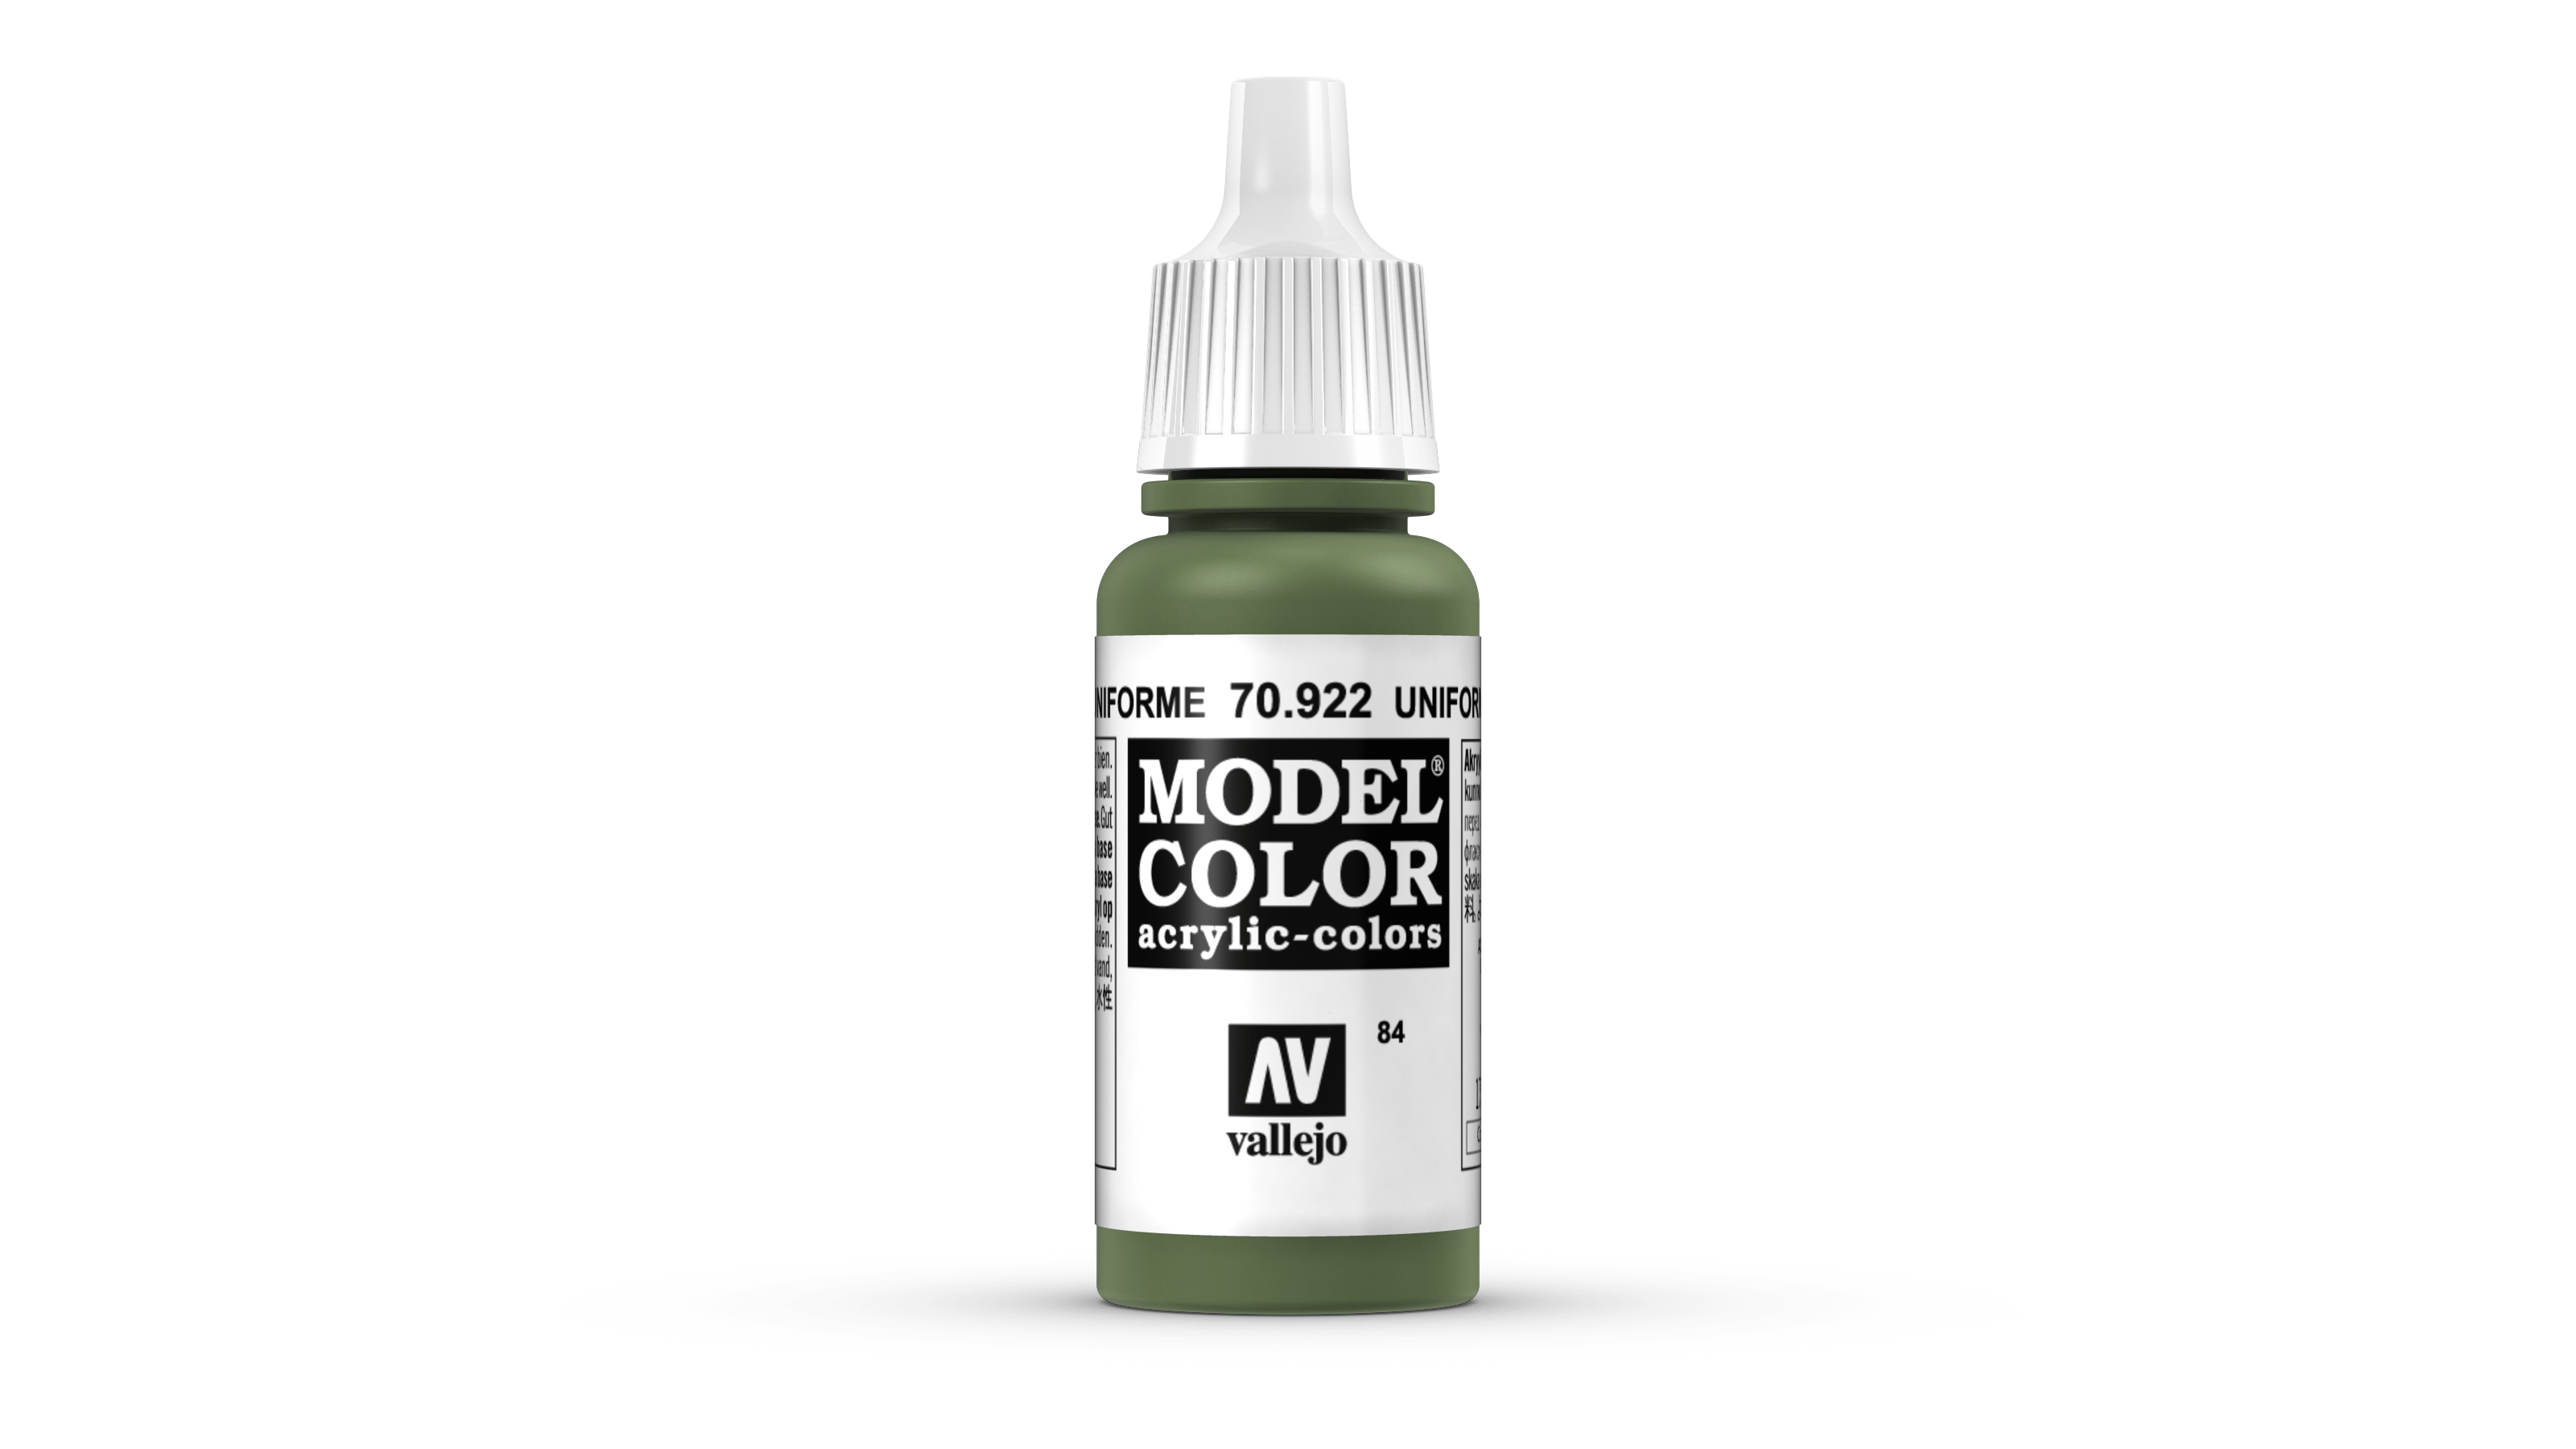 Vallejo Model Color Colour 70922 Uniform Green 084